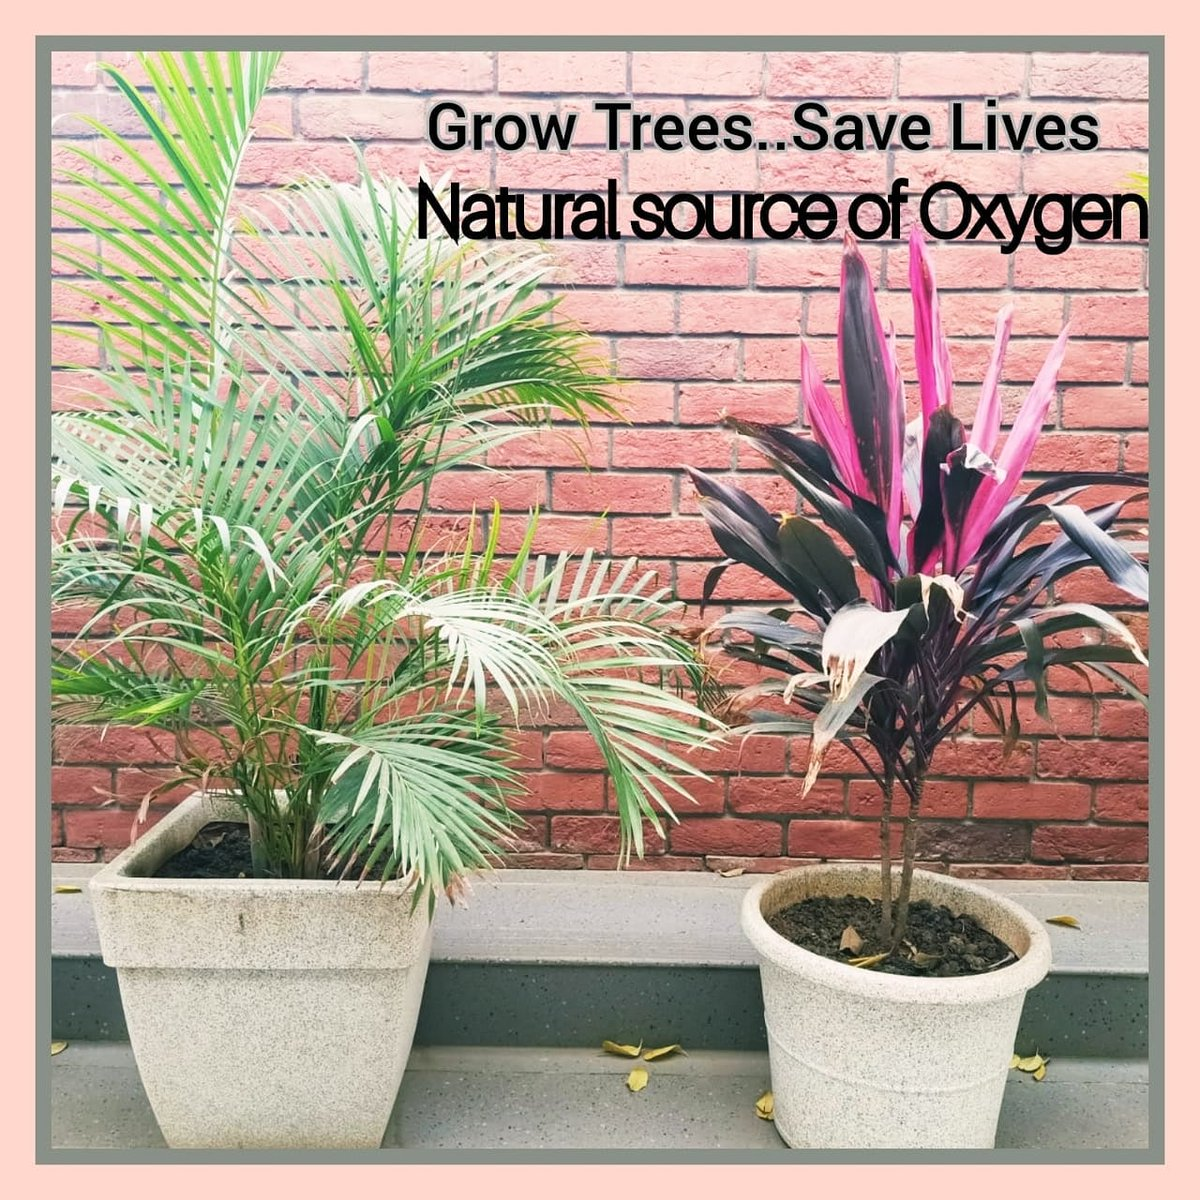 Trees are essential to our Lives. Trees are a natural source of Oxygen.  Let's pledge to Grow Trees and Save Human Lives.  #trees #naturaloxygen #growmoretrees #plants #positivity  #staysafe #stayhome #SupportHumanity #SHROFFism #manjulapoojashroff #MPS https://t.co/3Ls0mzRa66